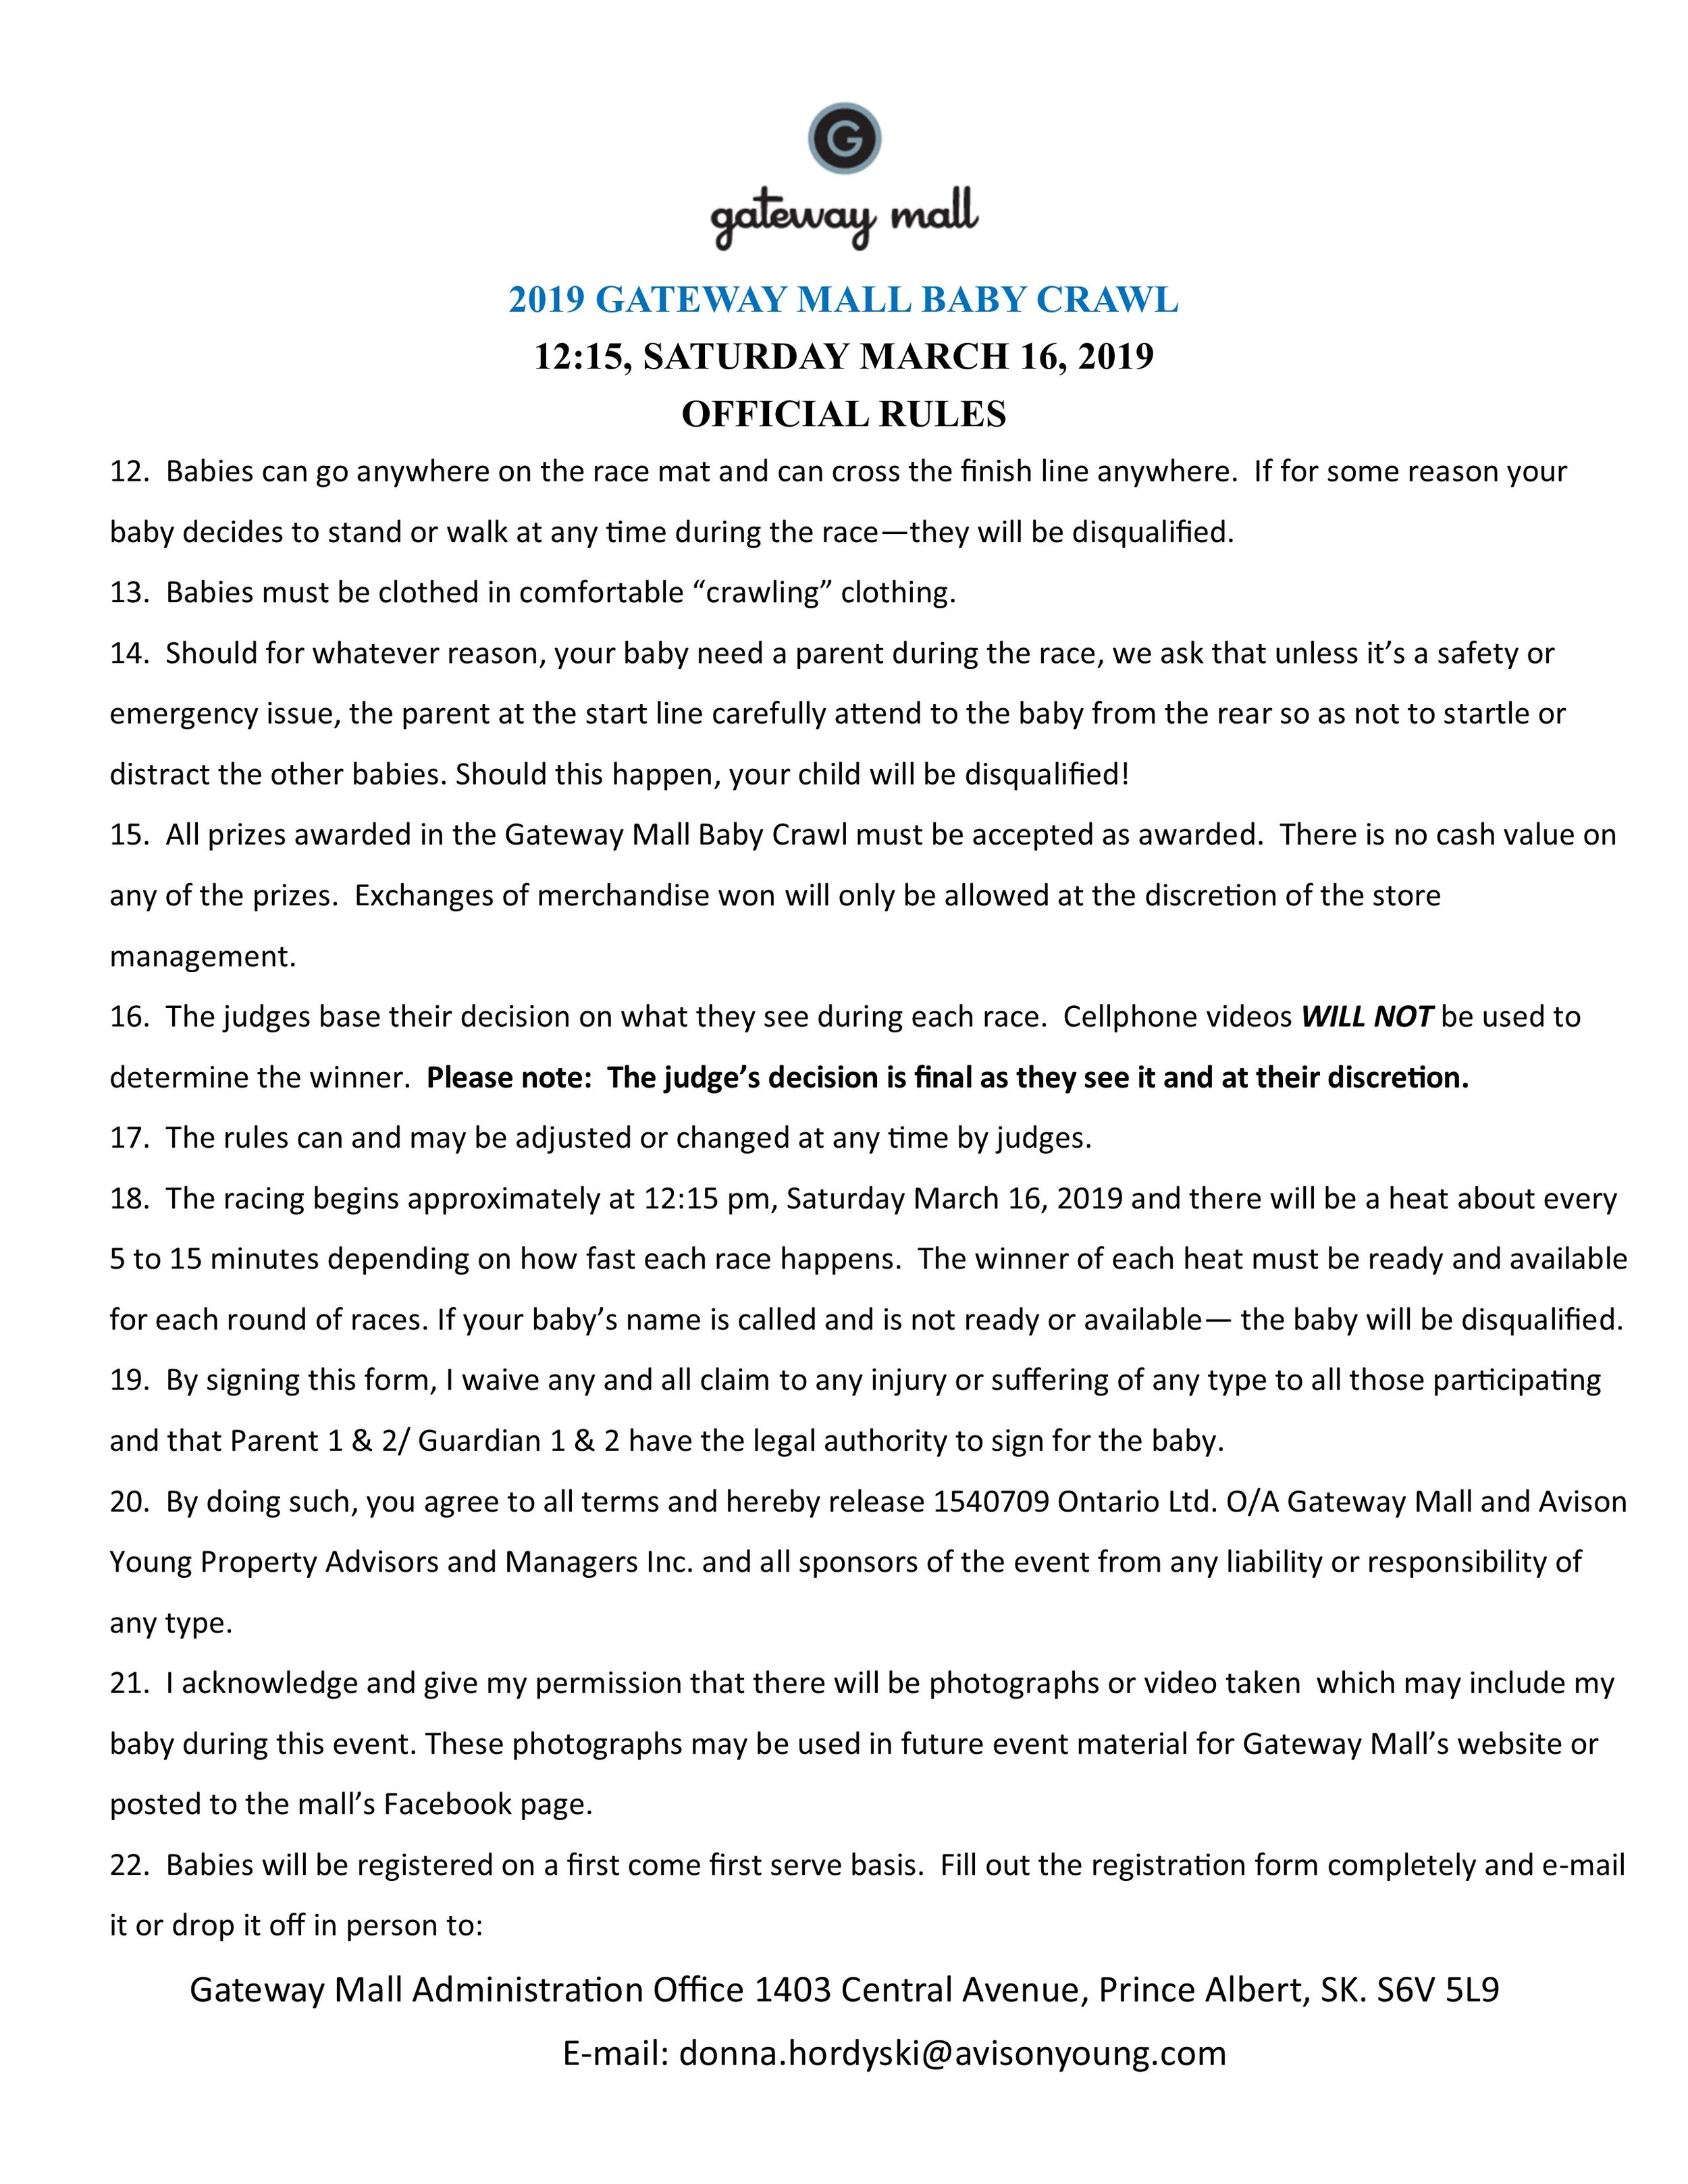 GWM 2019 Baby Crawl  Rules page 2.jpg